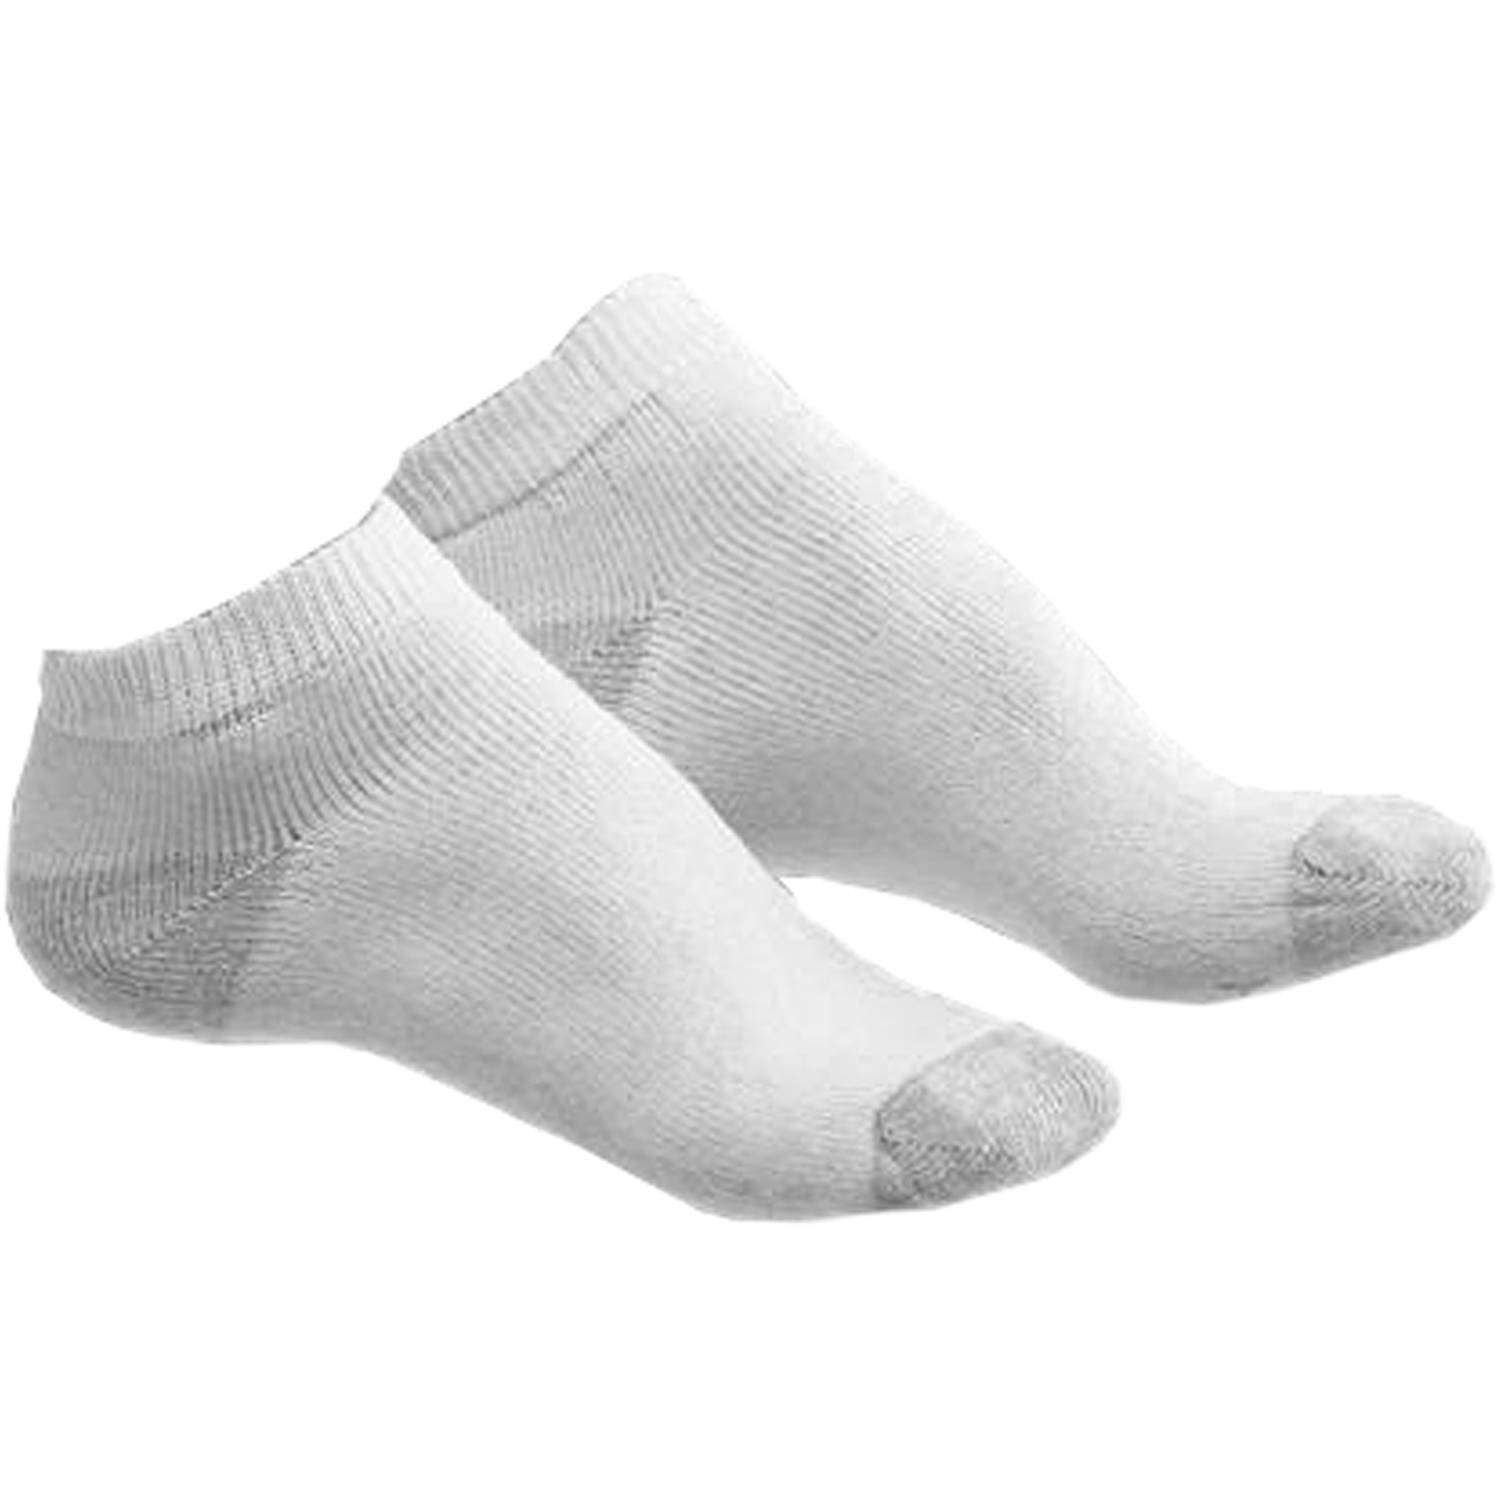 Hanes - Women's Low-Cut Athletic Socks, 6 Pairs